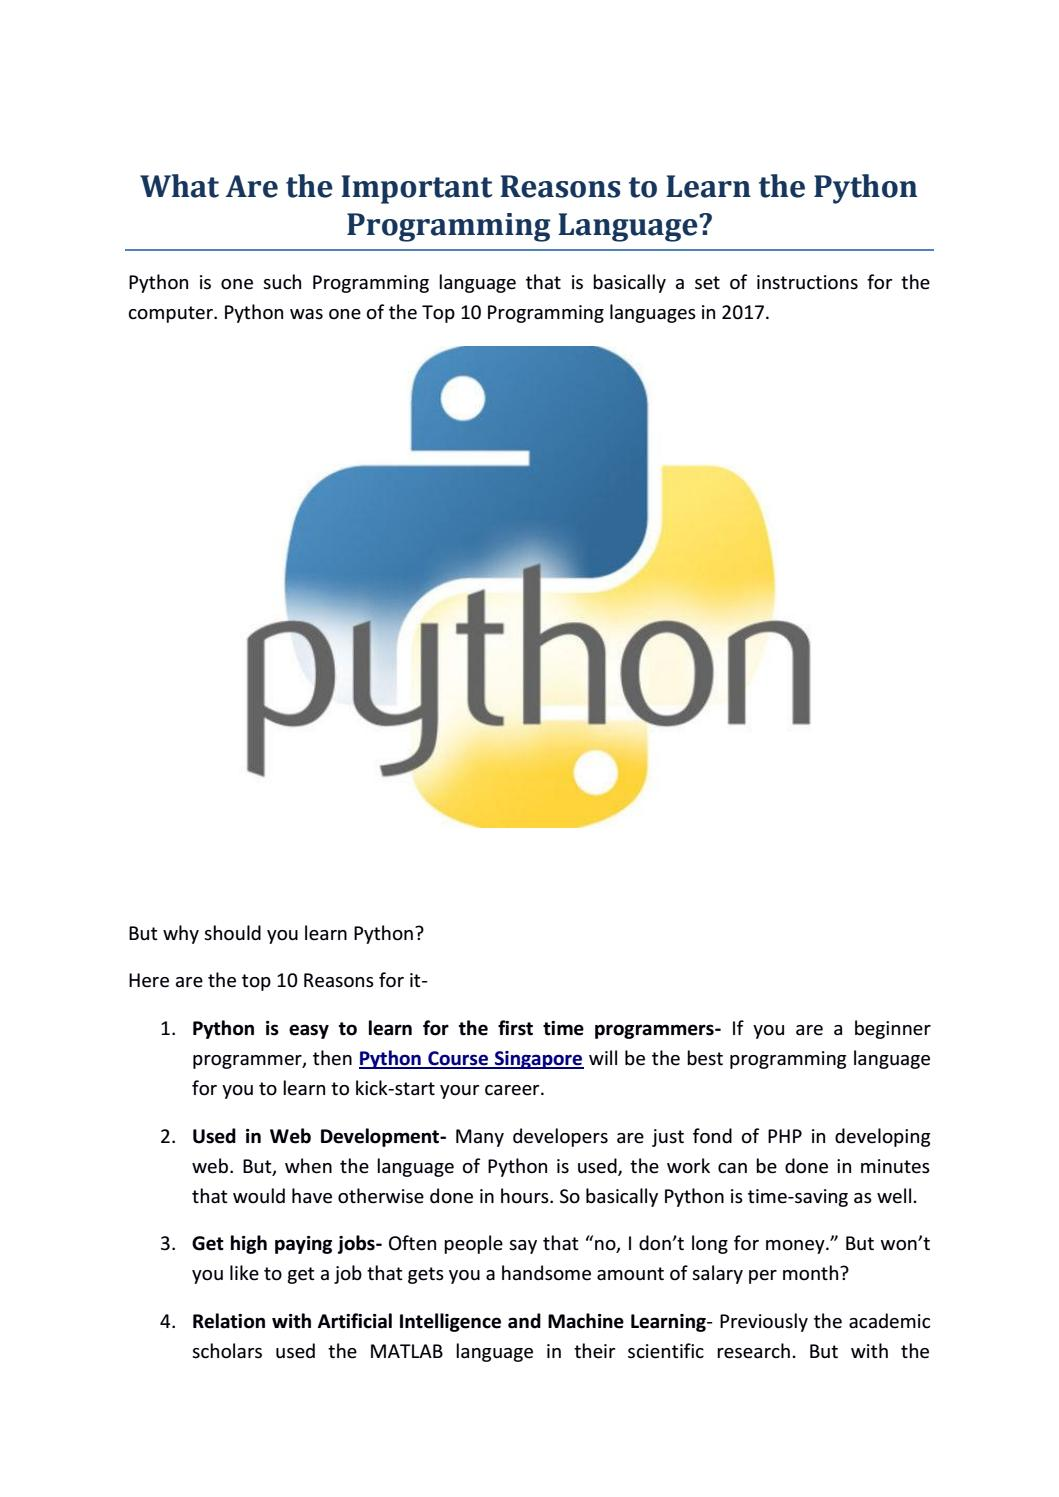 Important Reasons to Learn the Python Programming Language